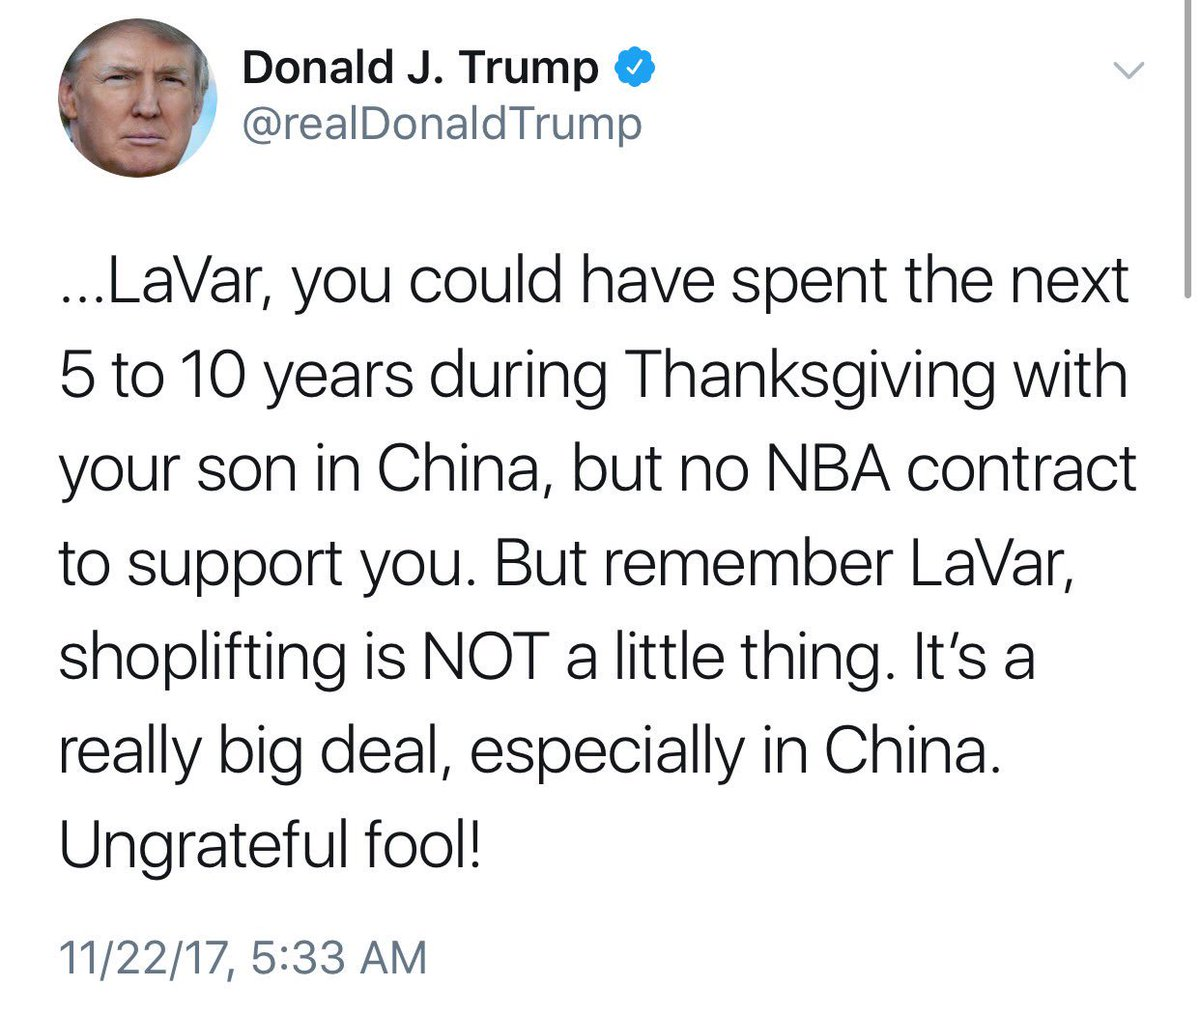 @realDonaldTrump 11 people were on board a crashed US Navy aircraft but at 5 am, the President of the United States is spending his time angrily calling LaVar Ball (yet another black person he's attacked) a poor man's Don King and an ungrateful fool… https://t.co/Hgd